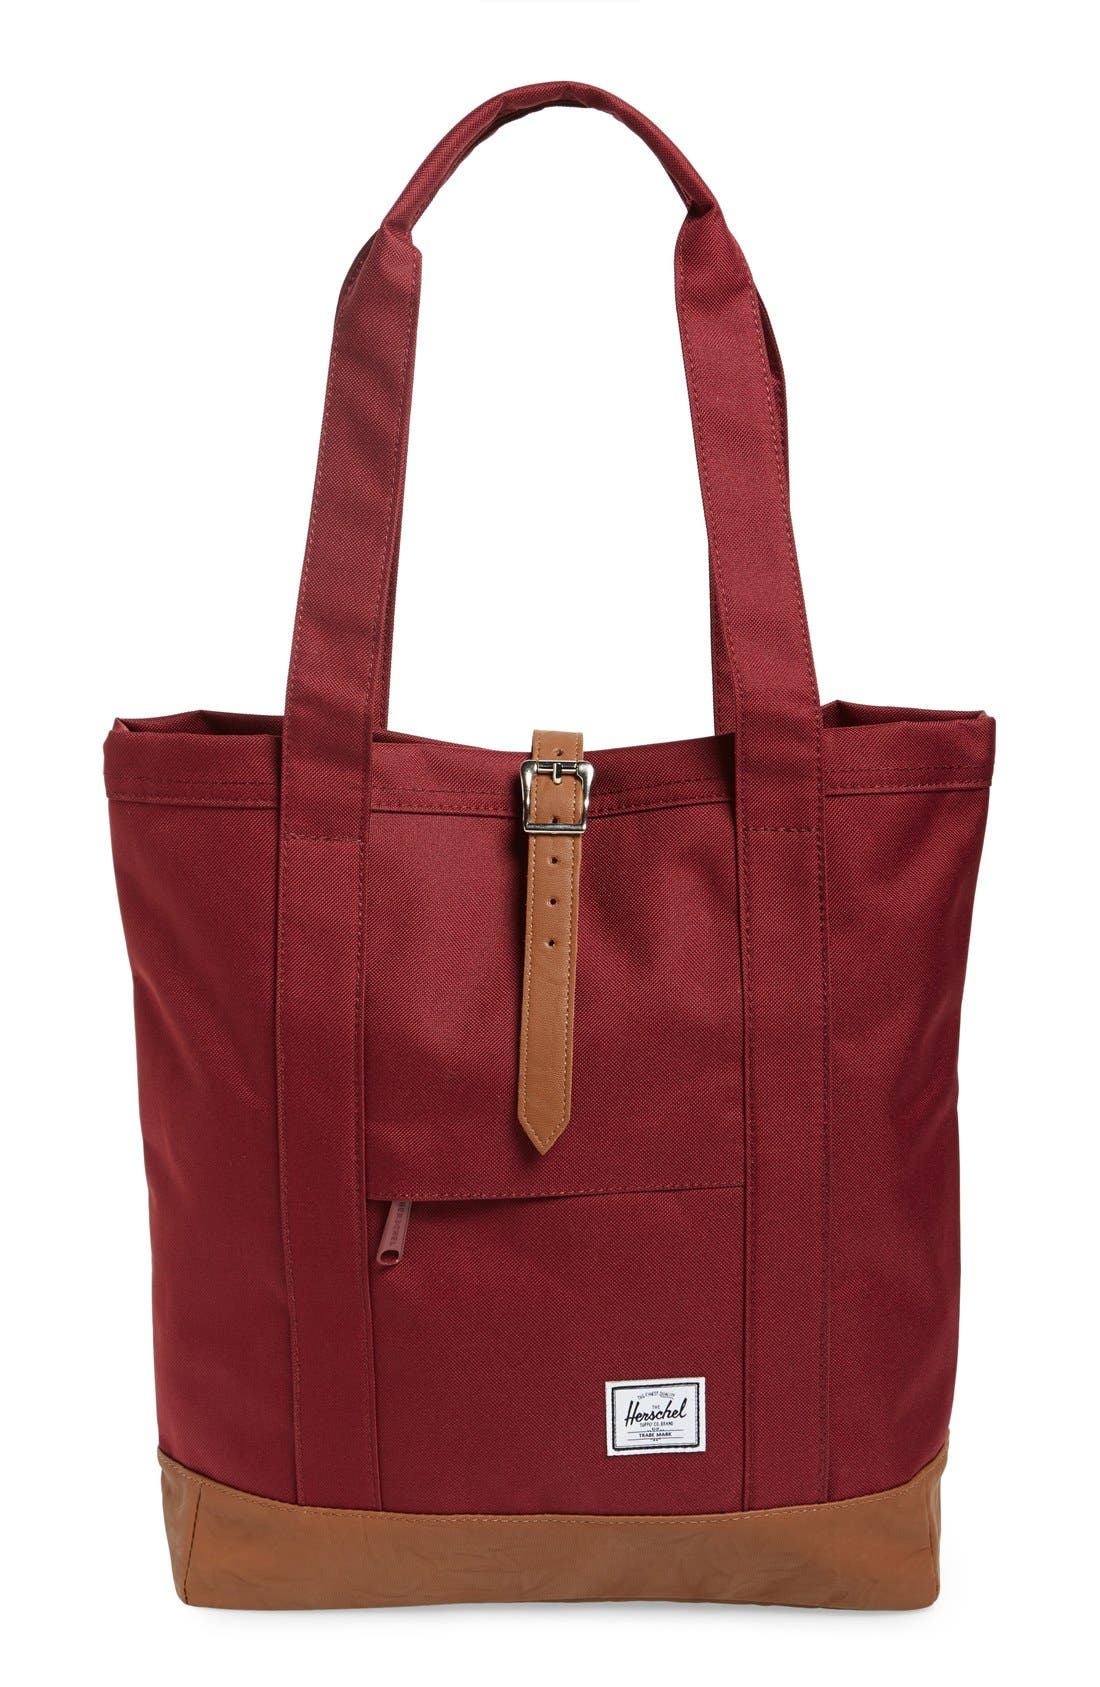 Herschel Supply Co. 'Market' Tote